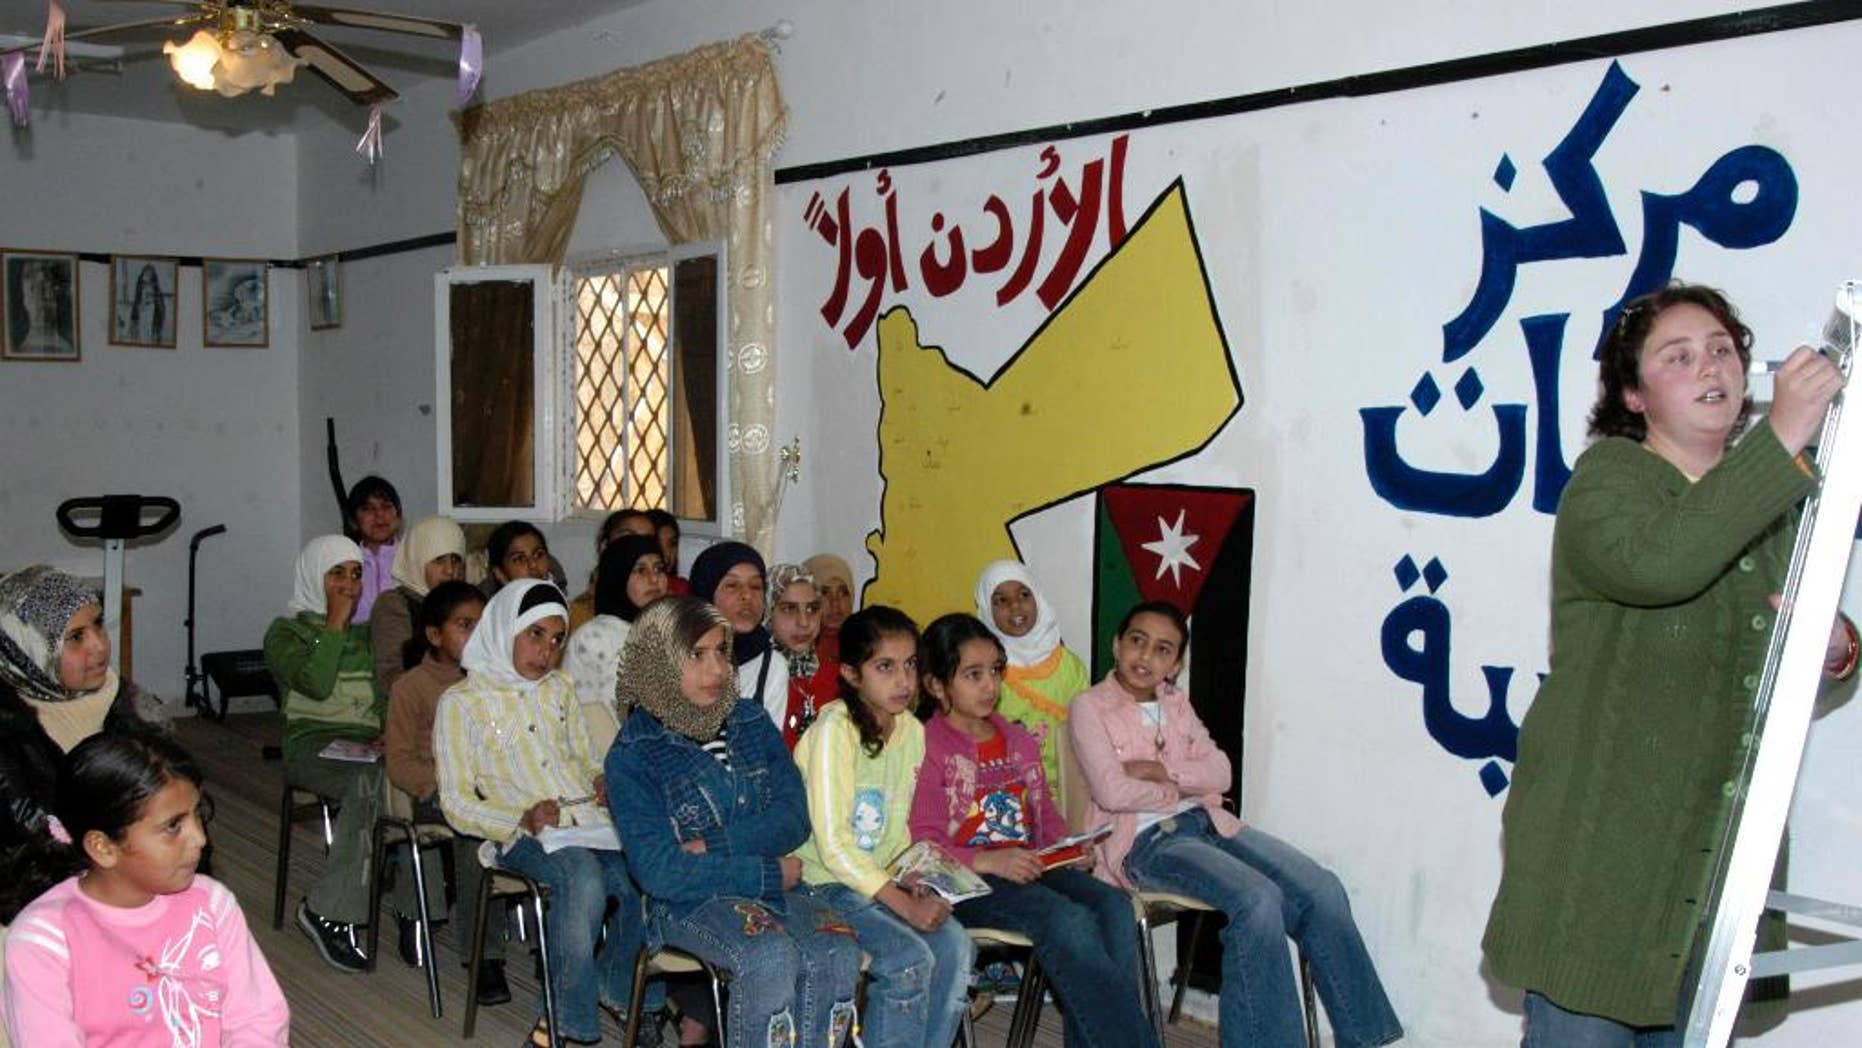 """This Nov. 16, 2006 photo provided by the Peace Corps, Andrea Girard from Coulterville, CA., teaches English at an all girls school in Jordan. The Peace Corps said Saturday, March 7, 2015, it is temporarily suspending its program in Jordan because of the """"regional environment,"""" highlighting growing security concerns among some foreigners after Jordan raised its profile in the battle against Islamic State militants. The Peace Corps said 37 volunteers had been working with local communities on youth development, and that all volunteers have left Jordan.  (AP Photo/Peace Corps)"""